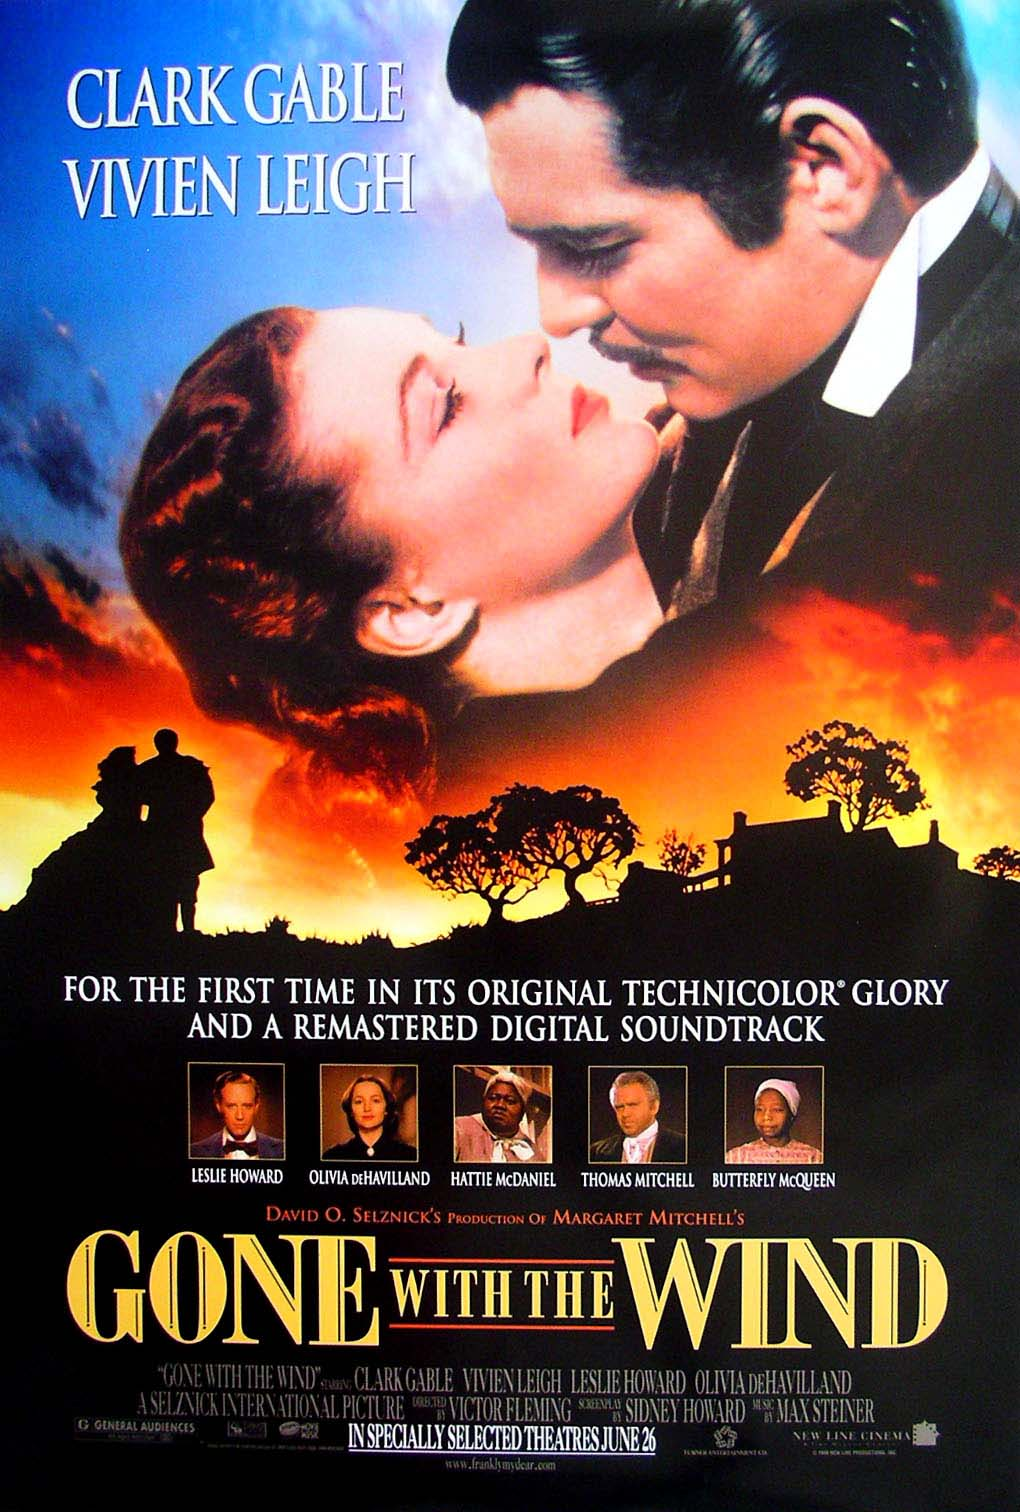 gone with the wind Top 10 Movies to Win Most Oscars